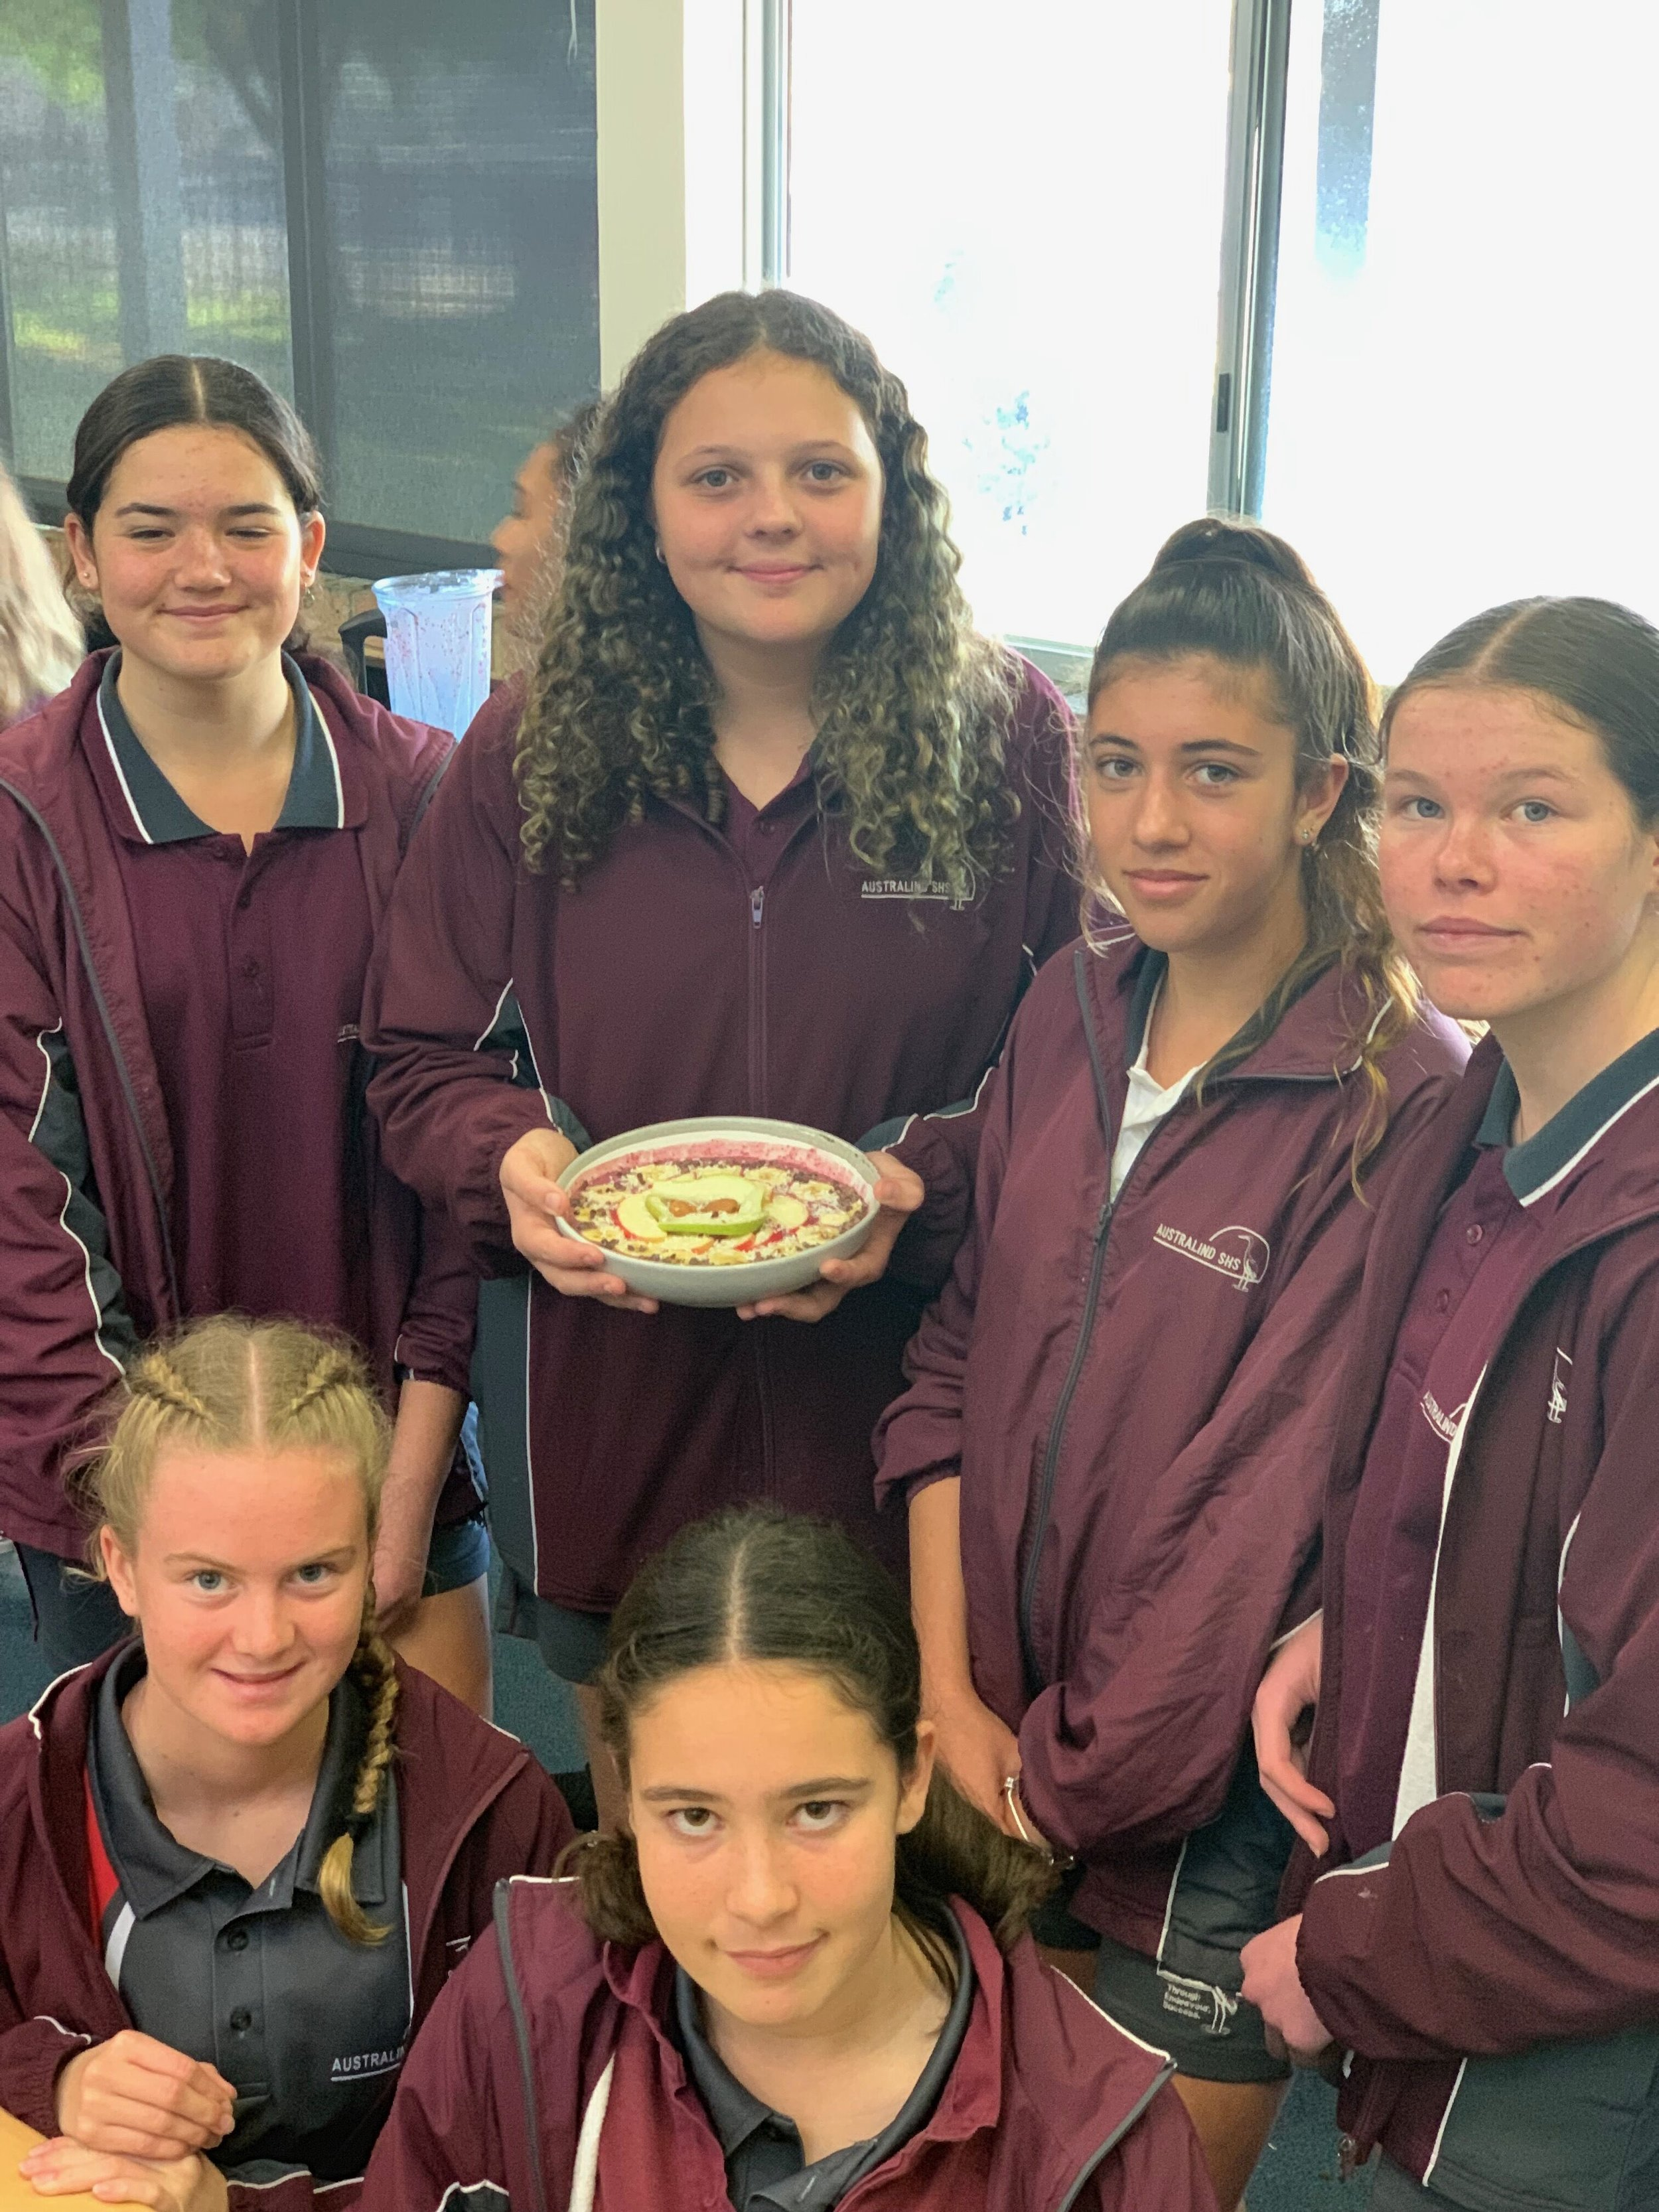 Some of the lovely students from the Australind Senior Highschool showcasing their MasterChef Smoothie Bowl creation. Having tried it, I can say it was delicious and full of antioxidant goodness!